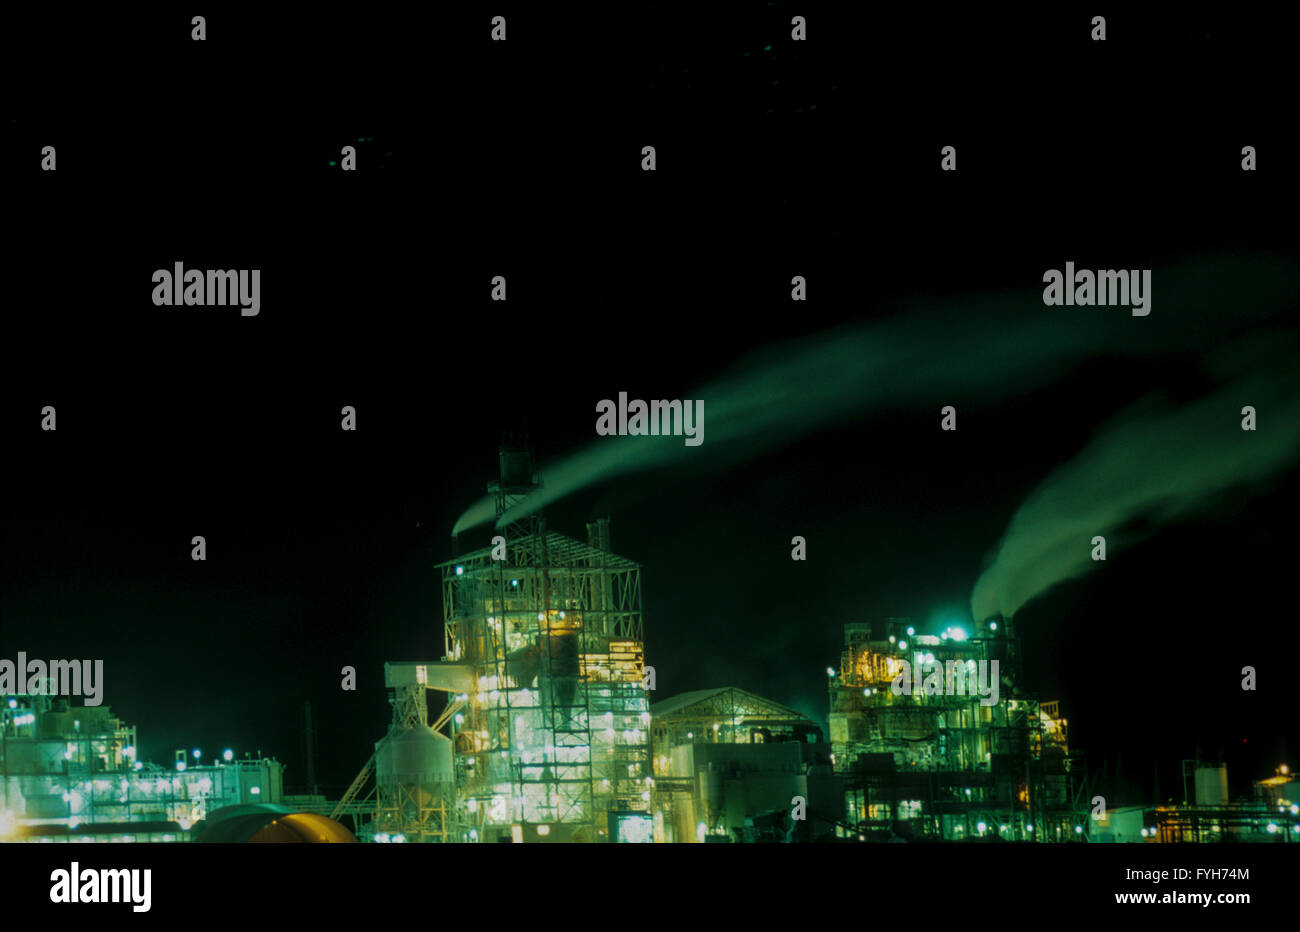 air pollution- smoking chimneys at night, at the phosphate factory, negev, israel - Stock Image